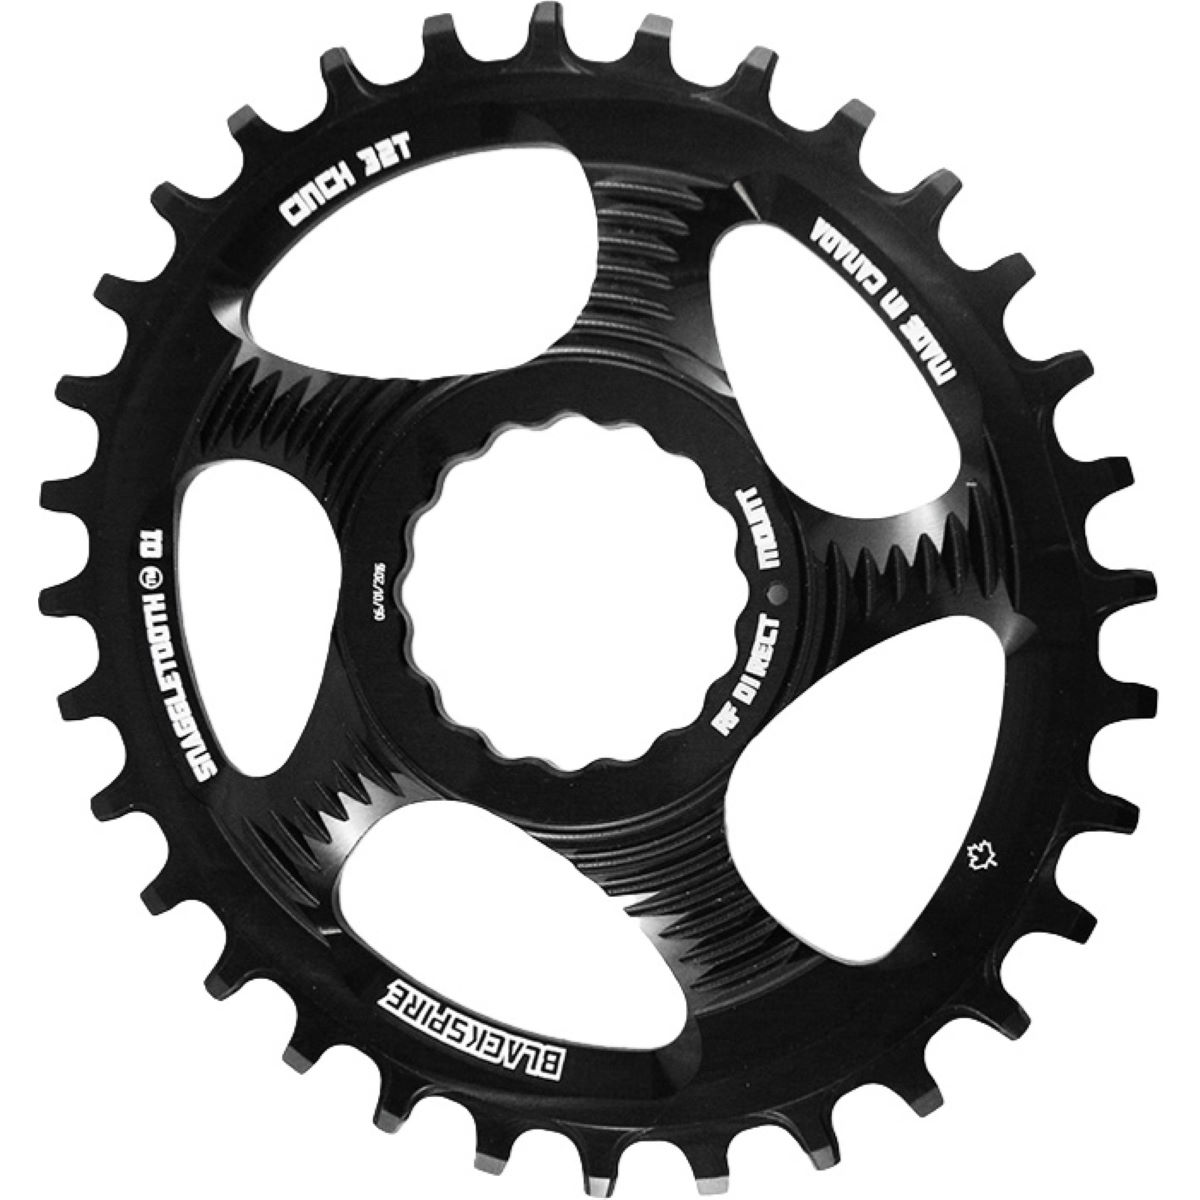 Blackspire Snaggletooth Oval Cinch Chainring - Platos